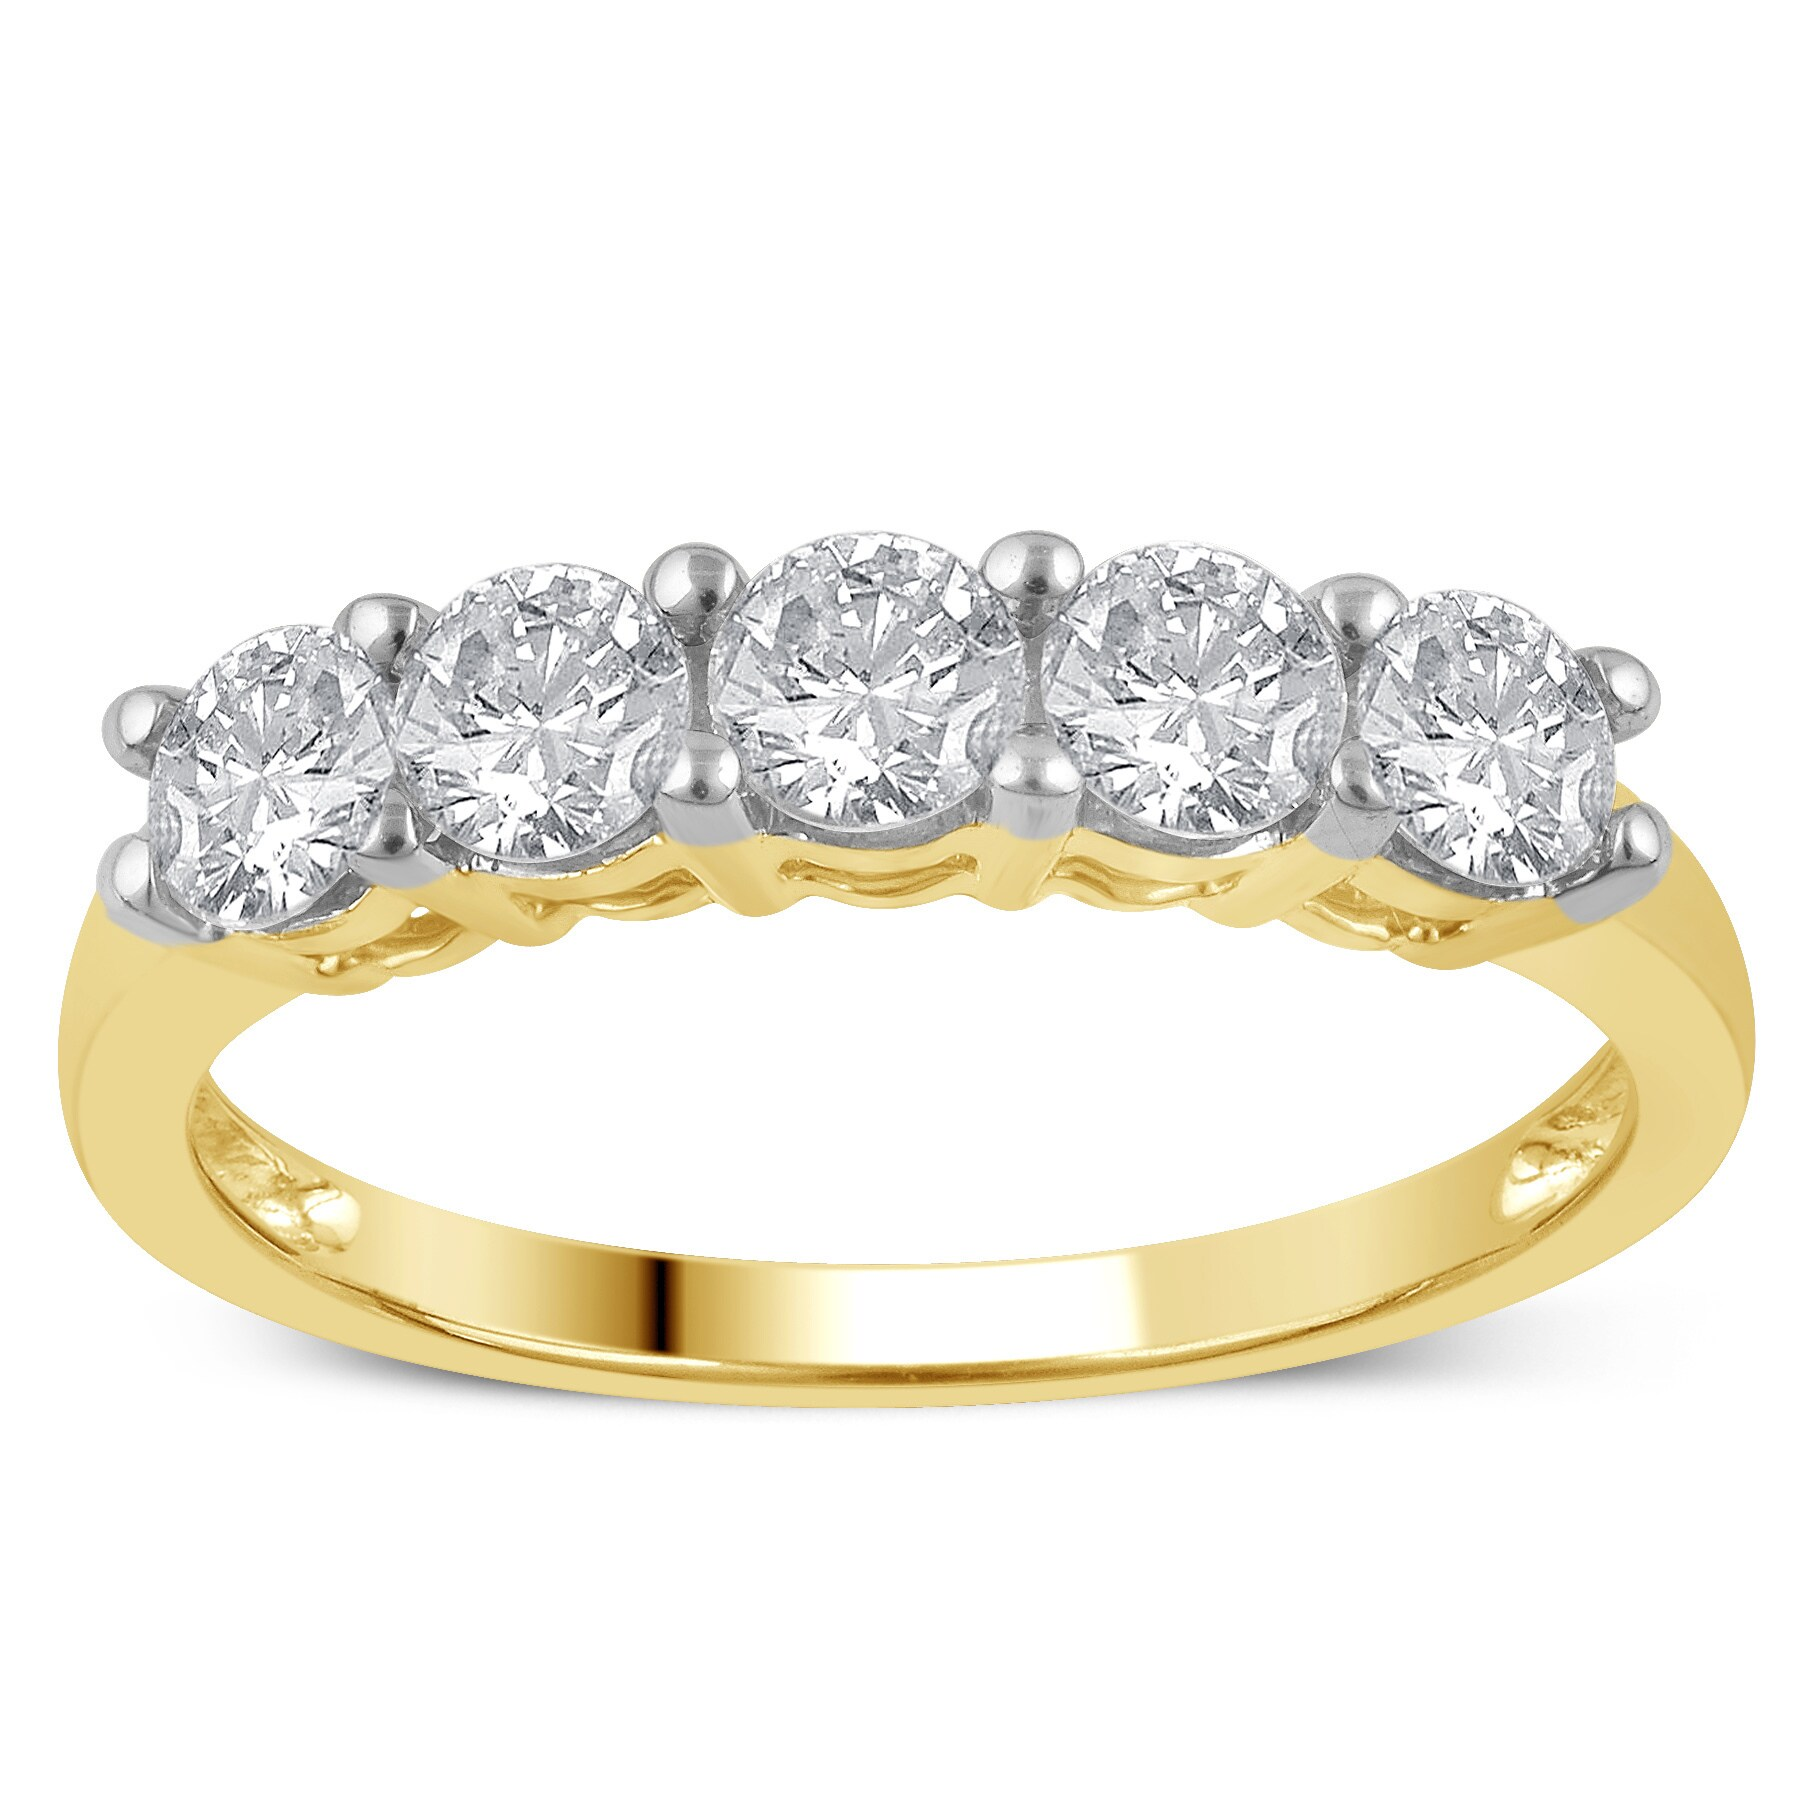 Divina 10k Yellow Gold 1ct TDW Diamond 5stone Wedding Band Free